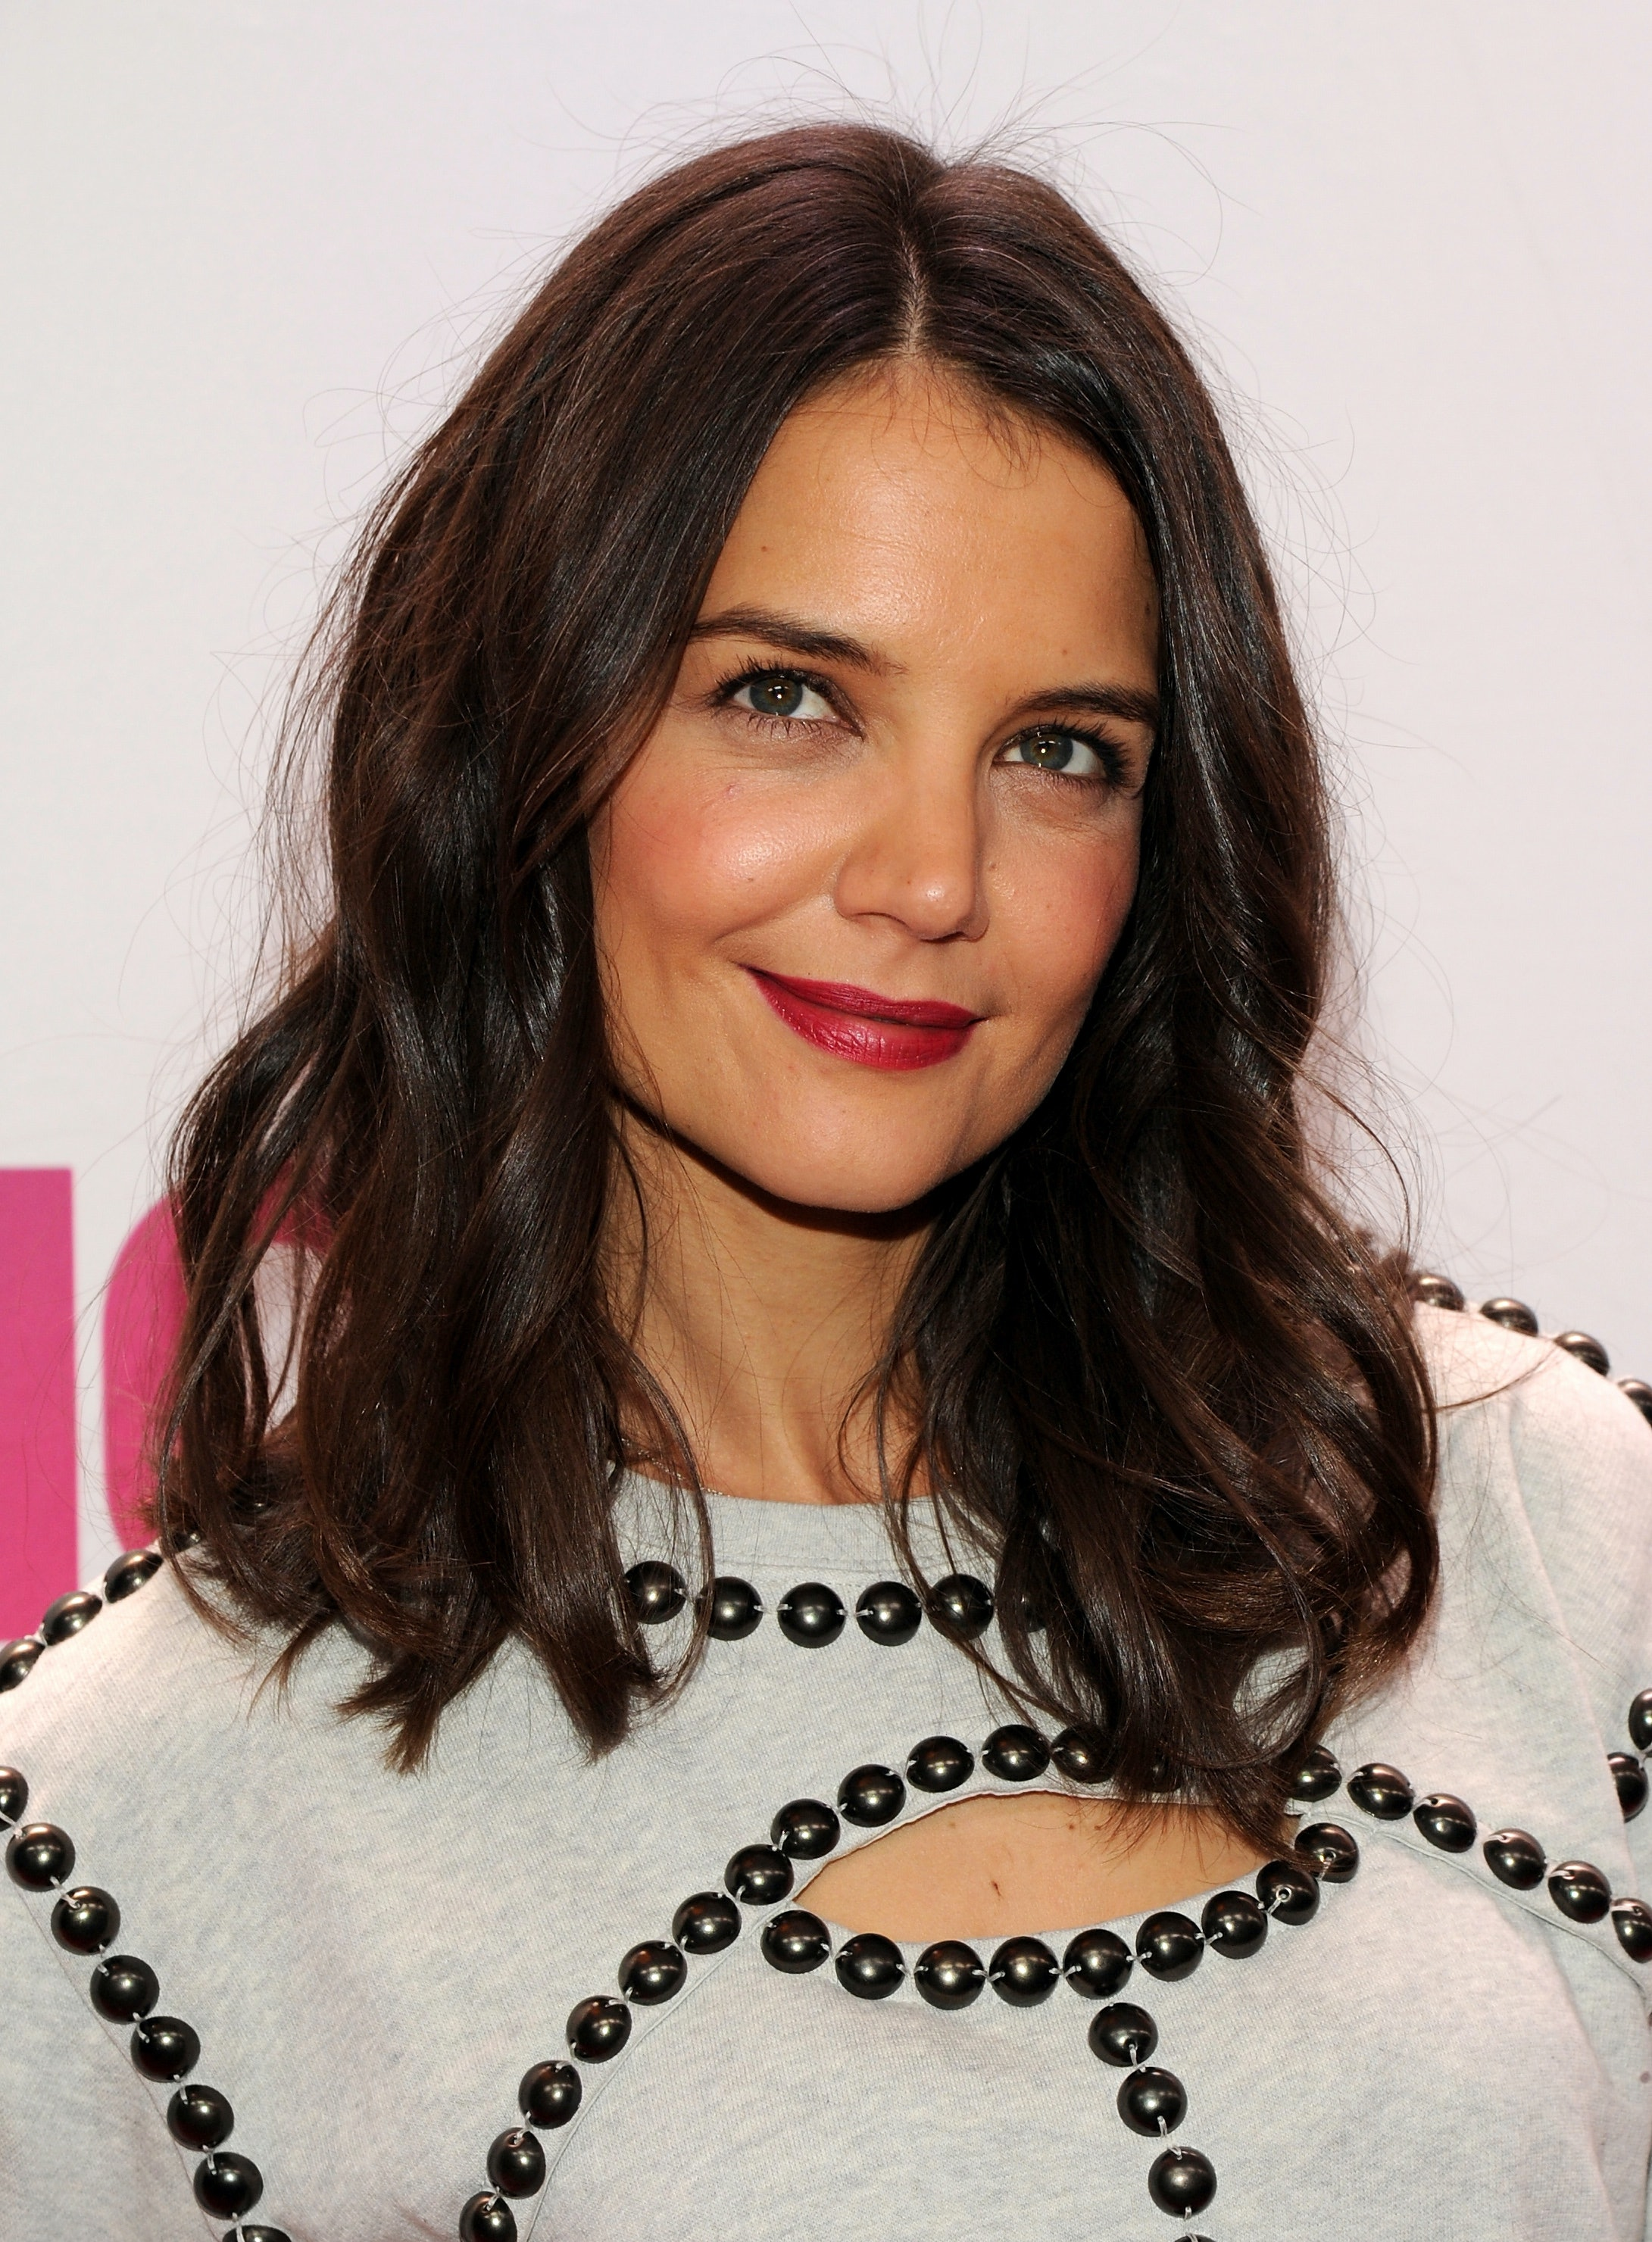 Katie Holmes Gets Shorter Hair And Goes Darker Too